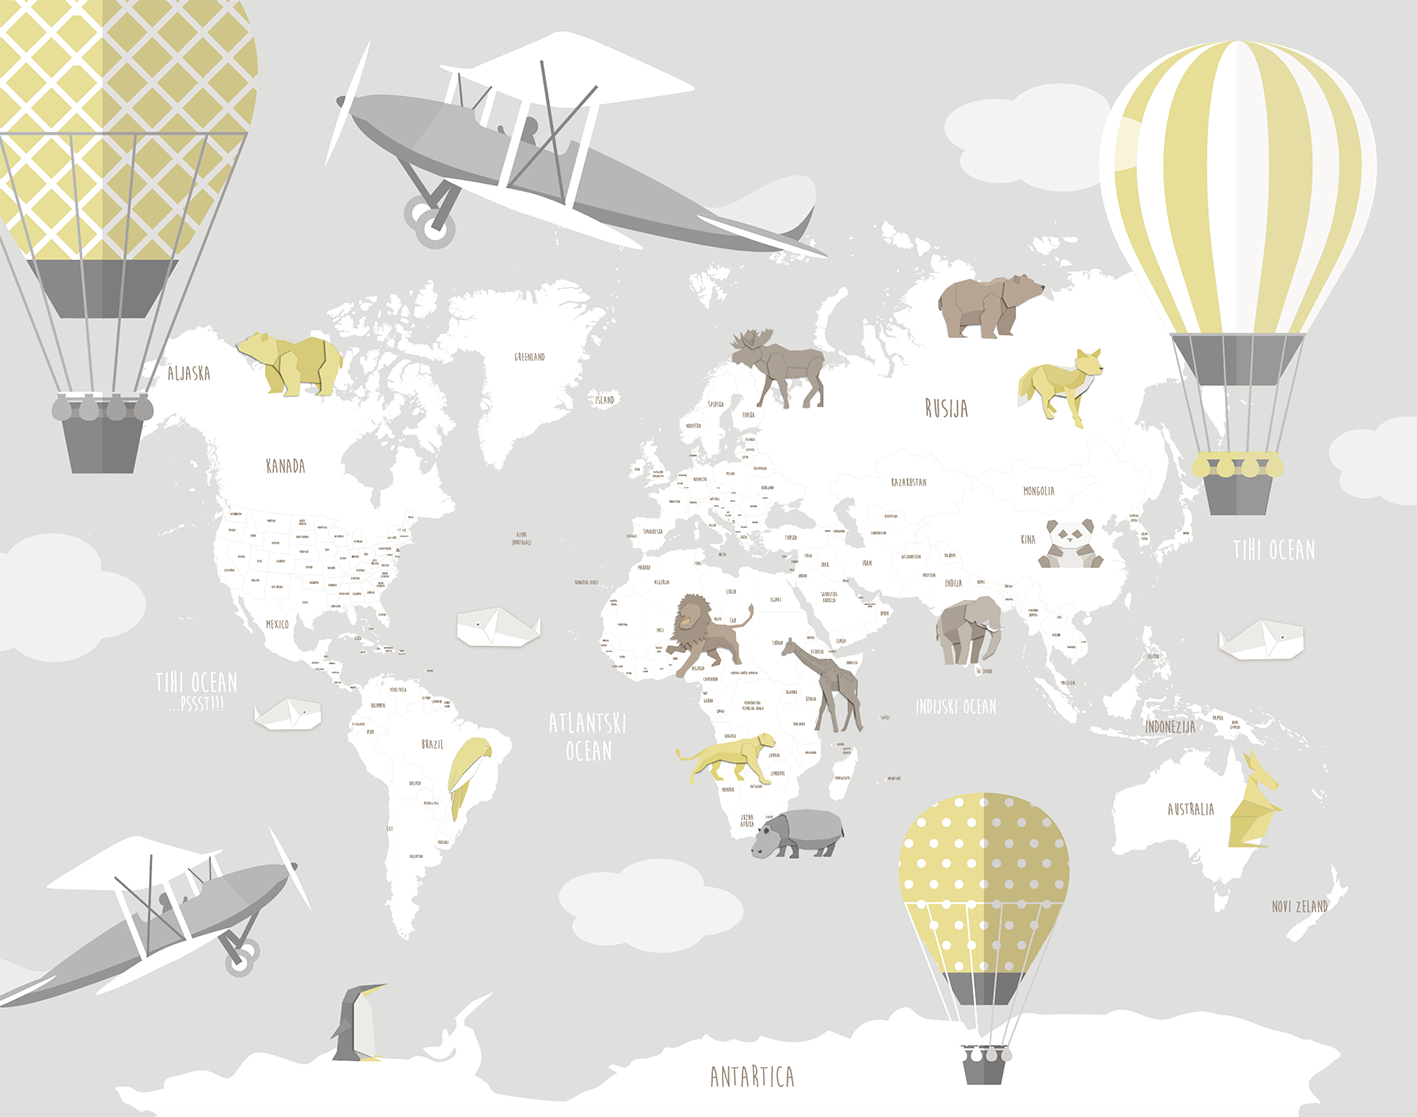 Airplanes_and_balloons_and_map_wallpaper